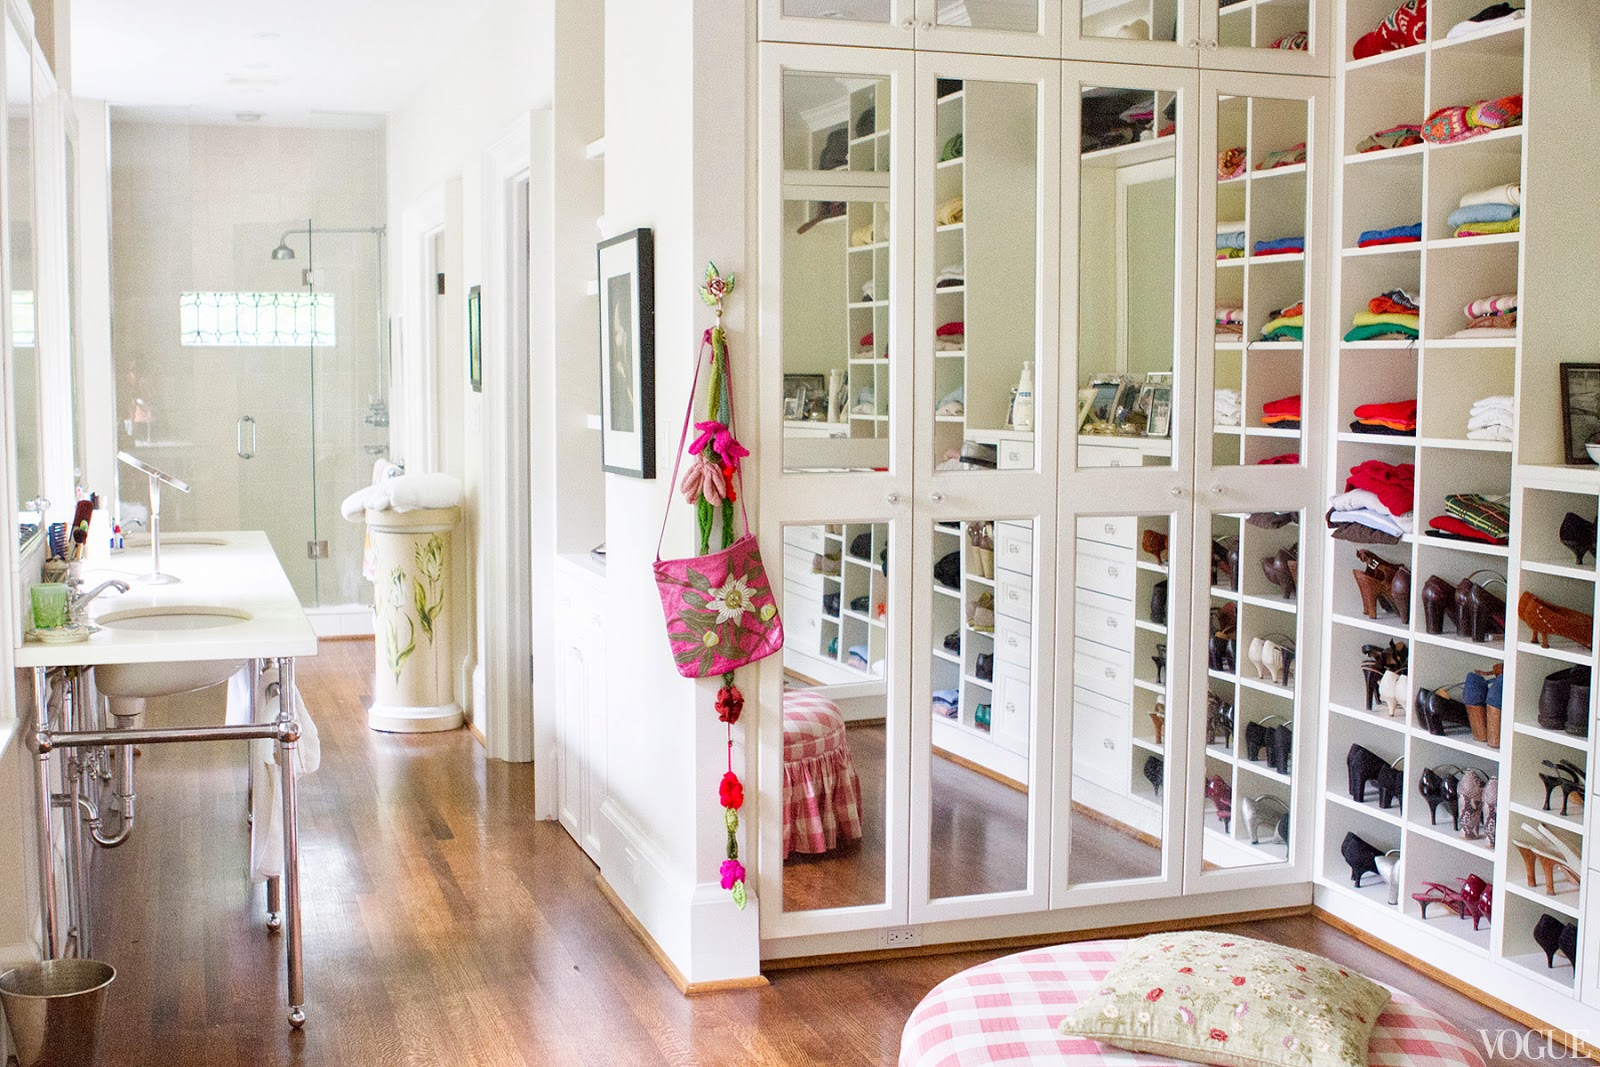 Family friendly home in toronto with personal style - Small closet design layout ...